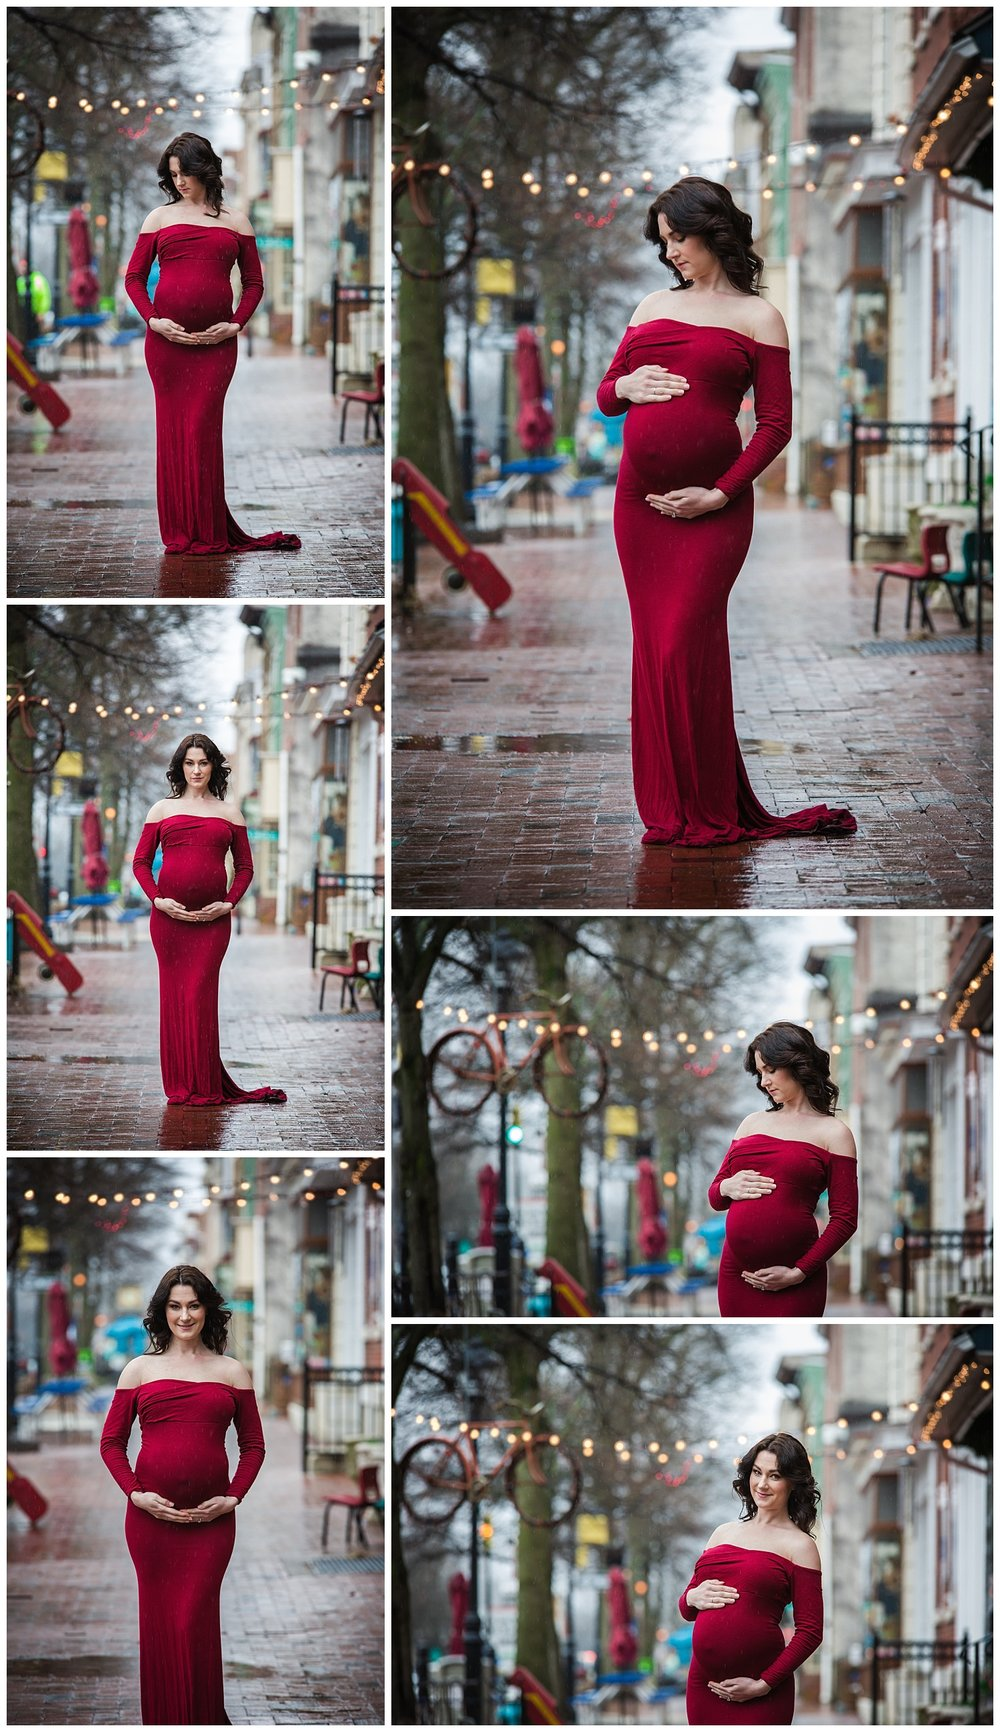 pregnancy photos in a red dress in burlington nj while raining